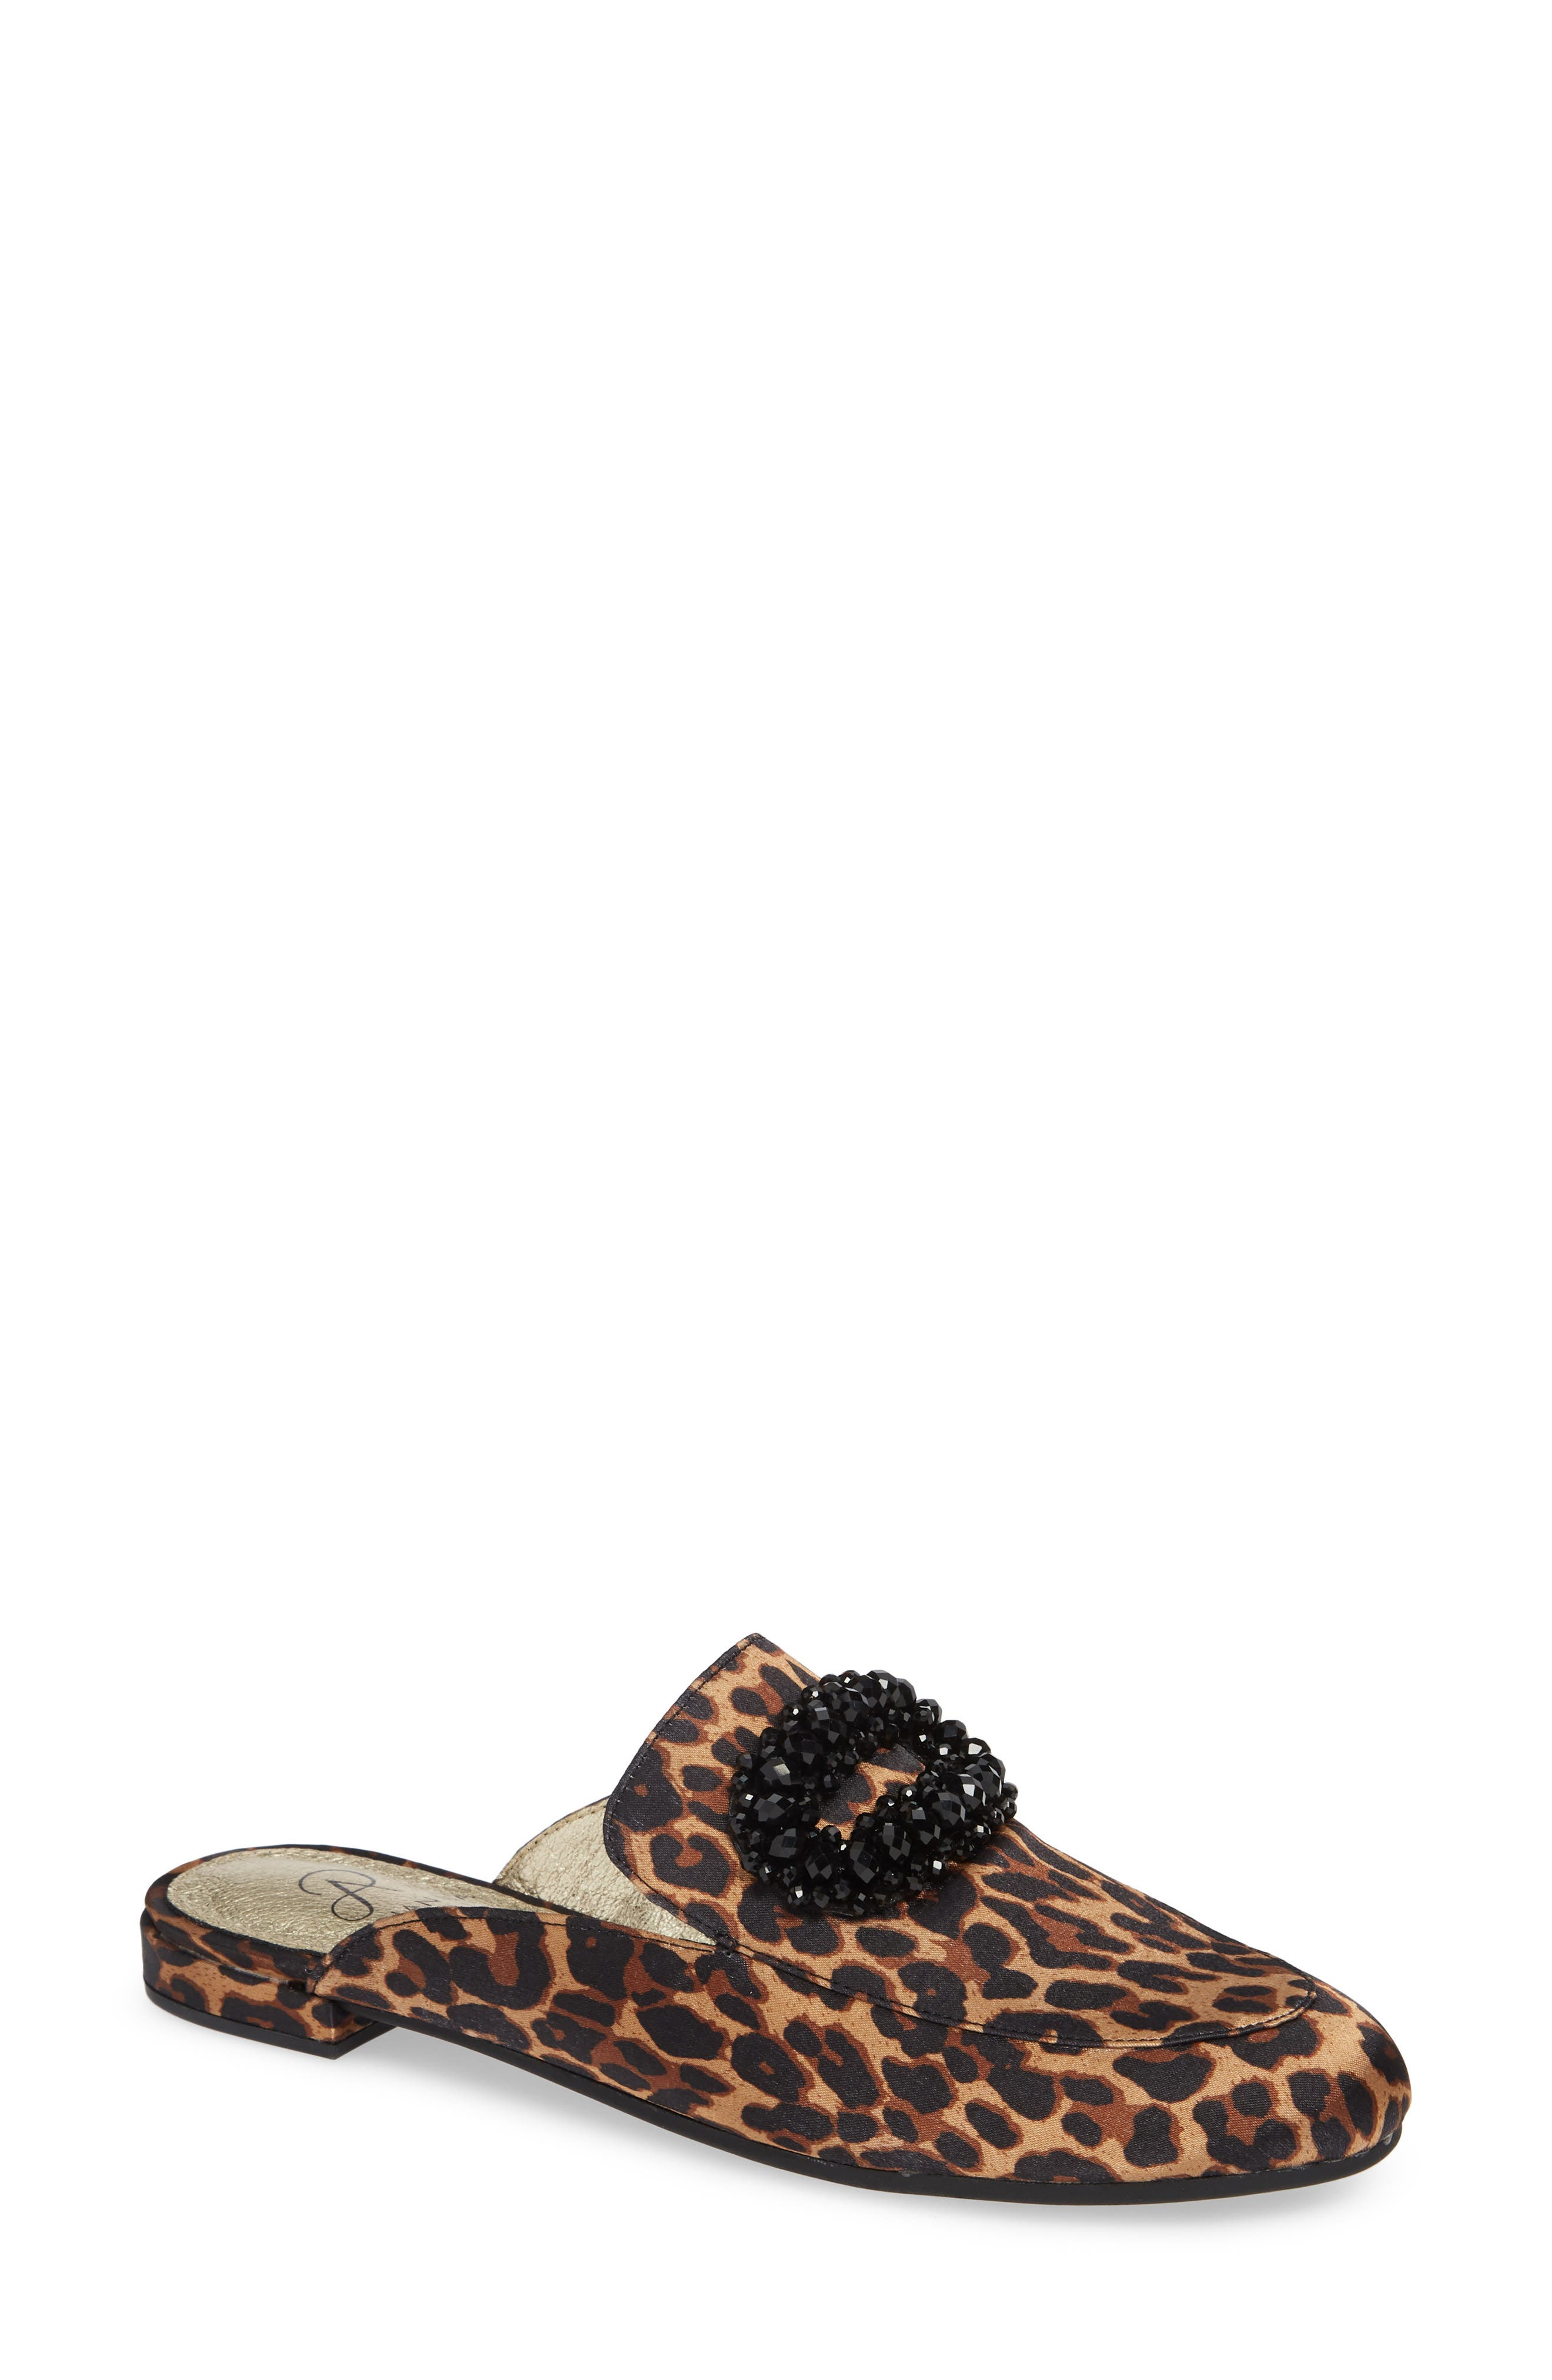 ADRIANNA PAPELL,                             Becky Embellished Mule,                             Main thumbnail 1, color,                             LEOPARD